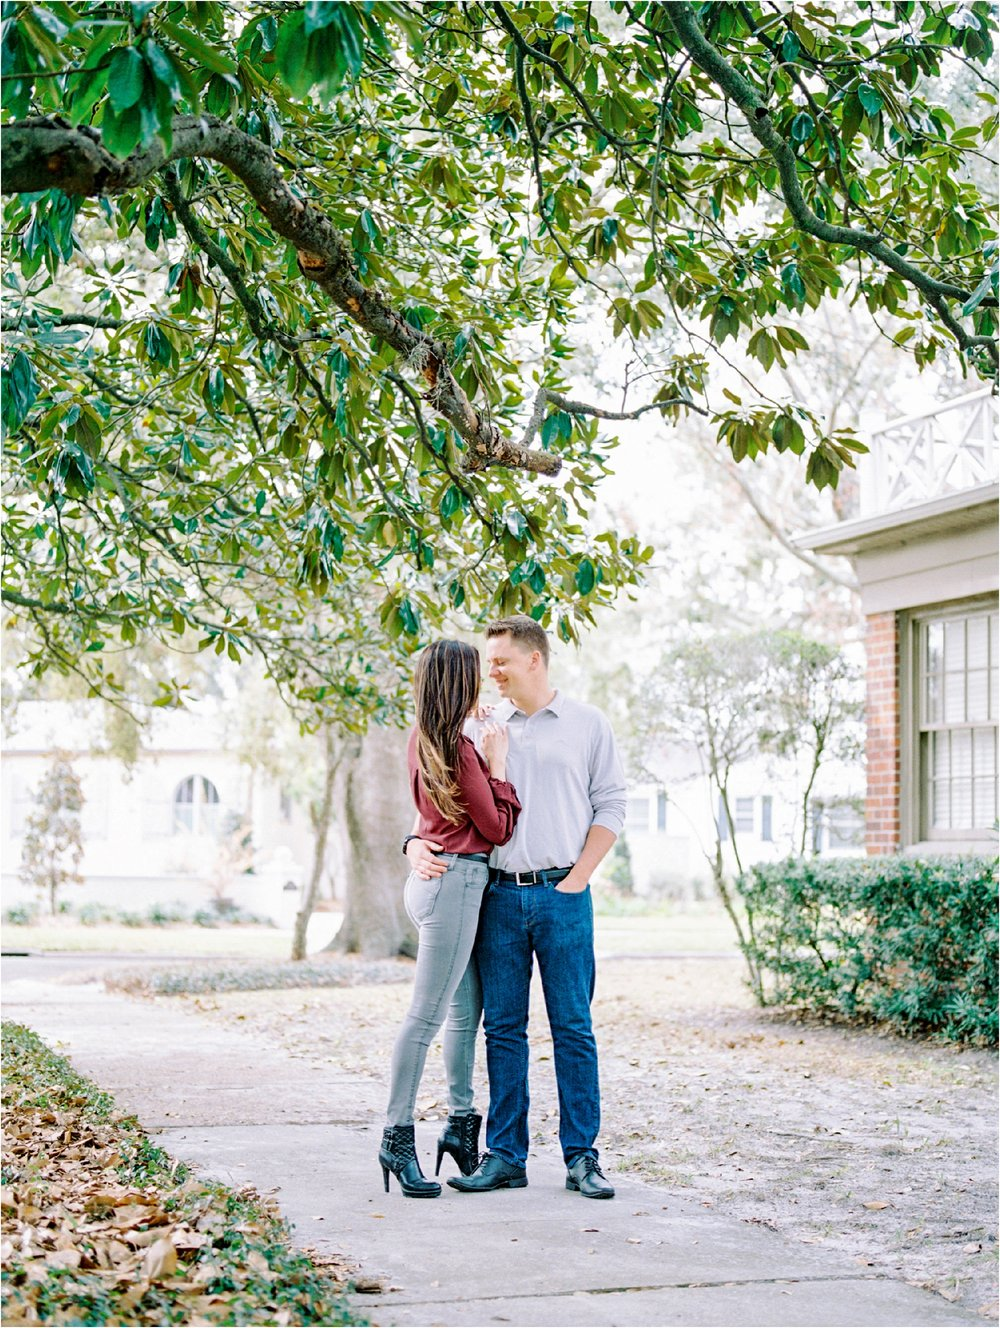 Lisa Silva Photography- Ponte Vedra Beach and Jacksonville, Florida Fine Art Film Wedding Photography- San Marco Jacksonville florida Engagement Session_0007.jpg